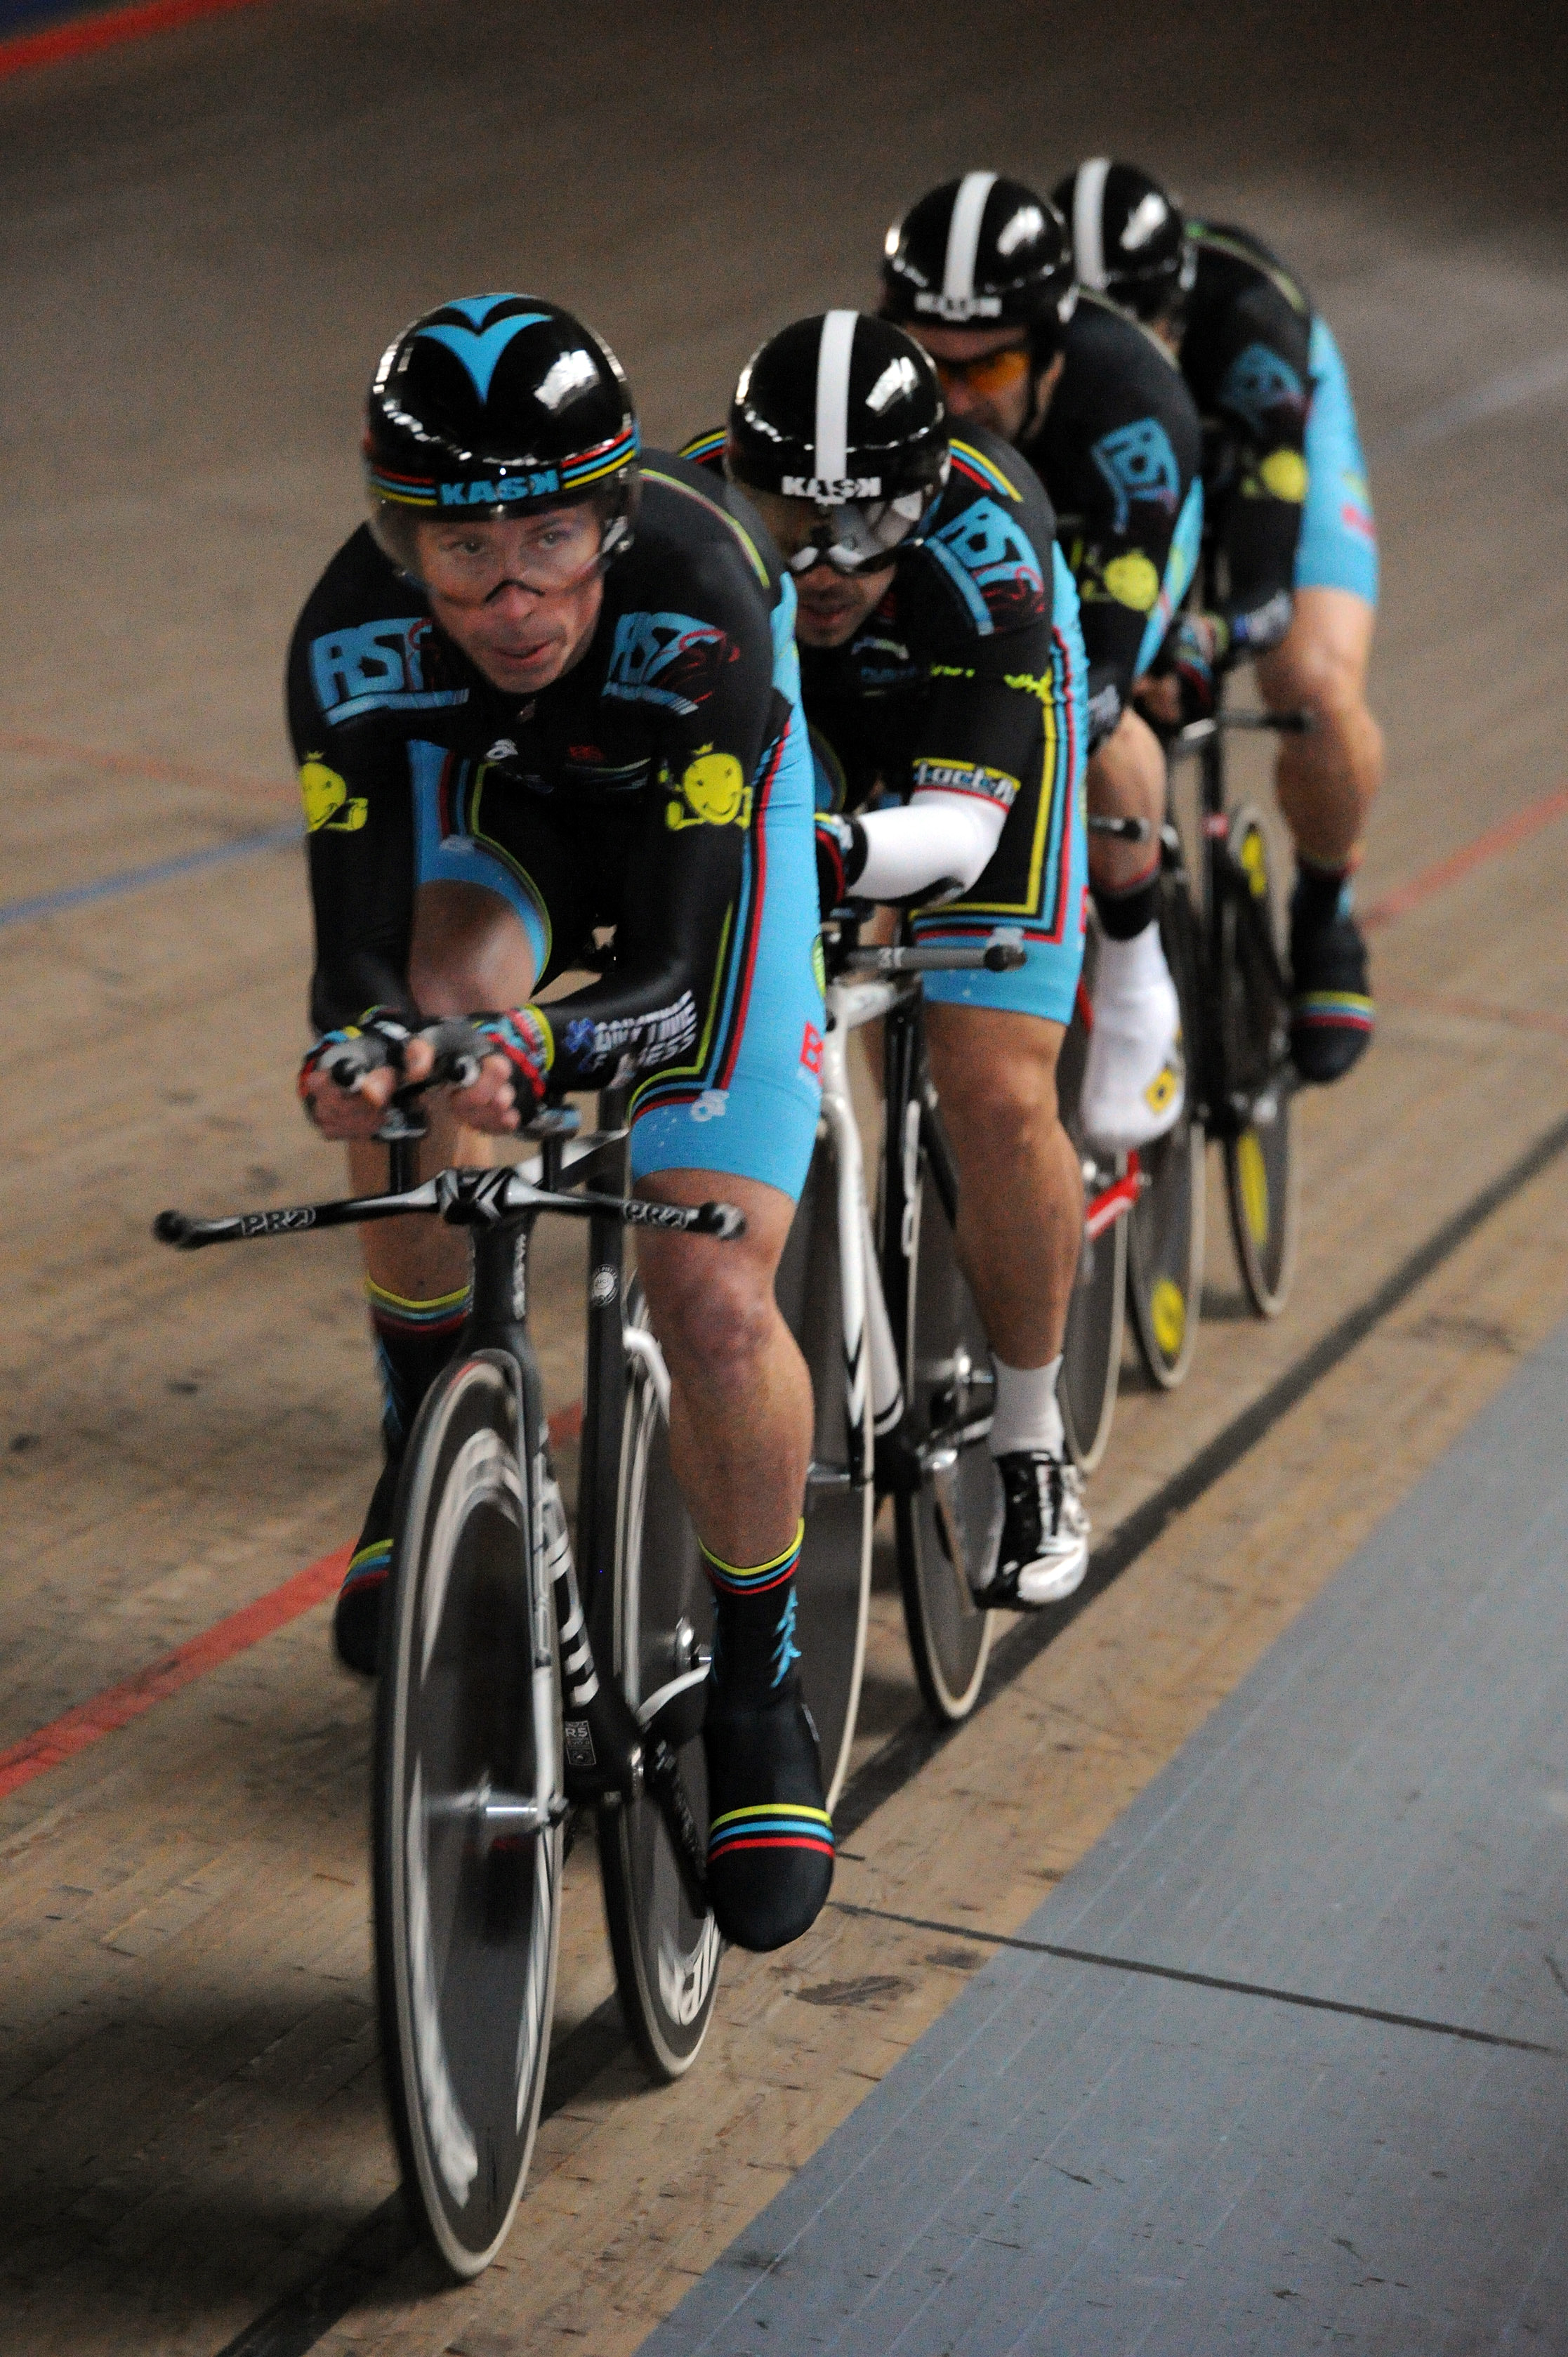 NSW Masters Teams Pursuit Championships February 14 - Jayson Austin, Alex Arancibia, Rick McArdle, Matt Glanville